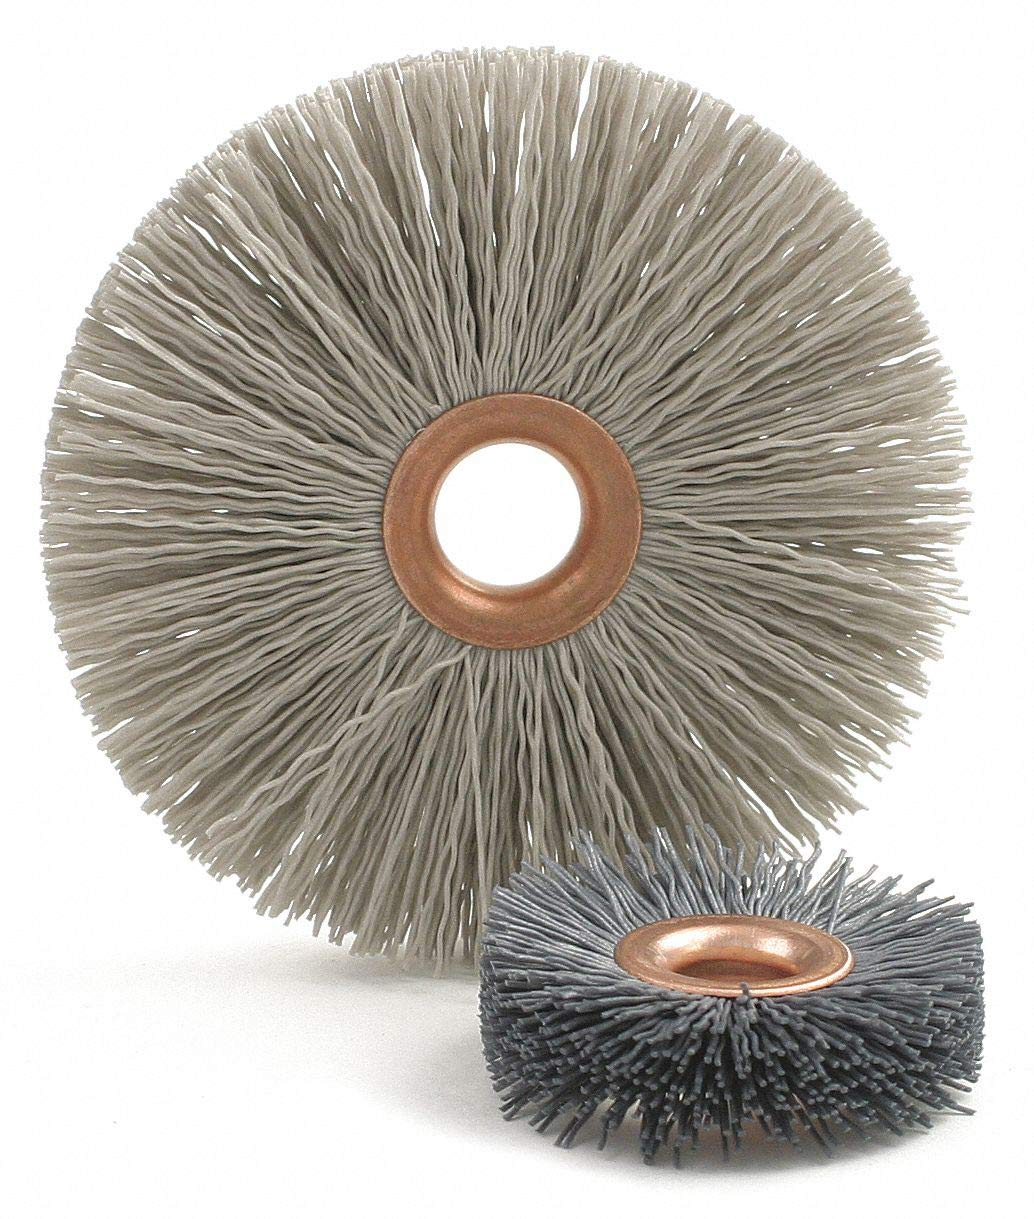 1'' Crimped Wire Wheel Brush, Arbor Hole Mounting, 0.018'' Wire Dia, 1 EA - pack of 5